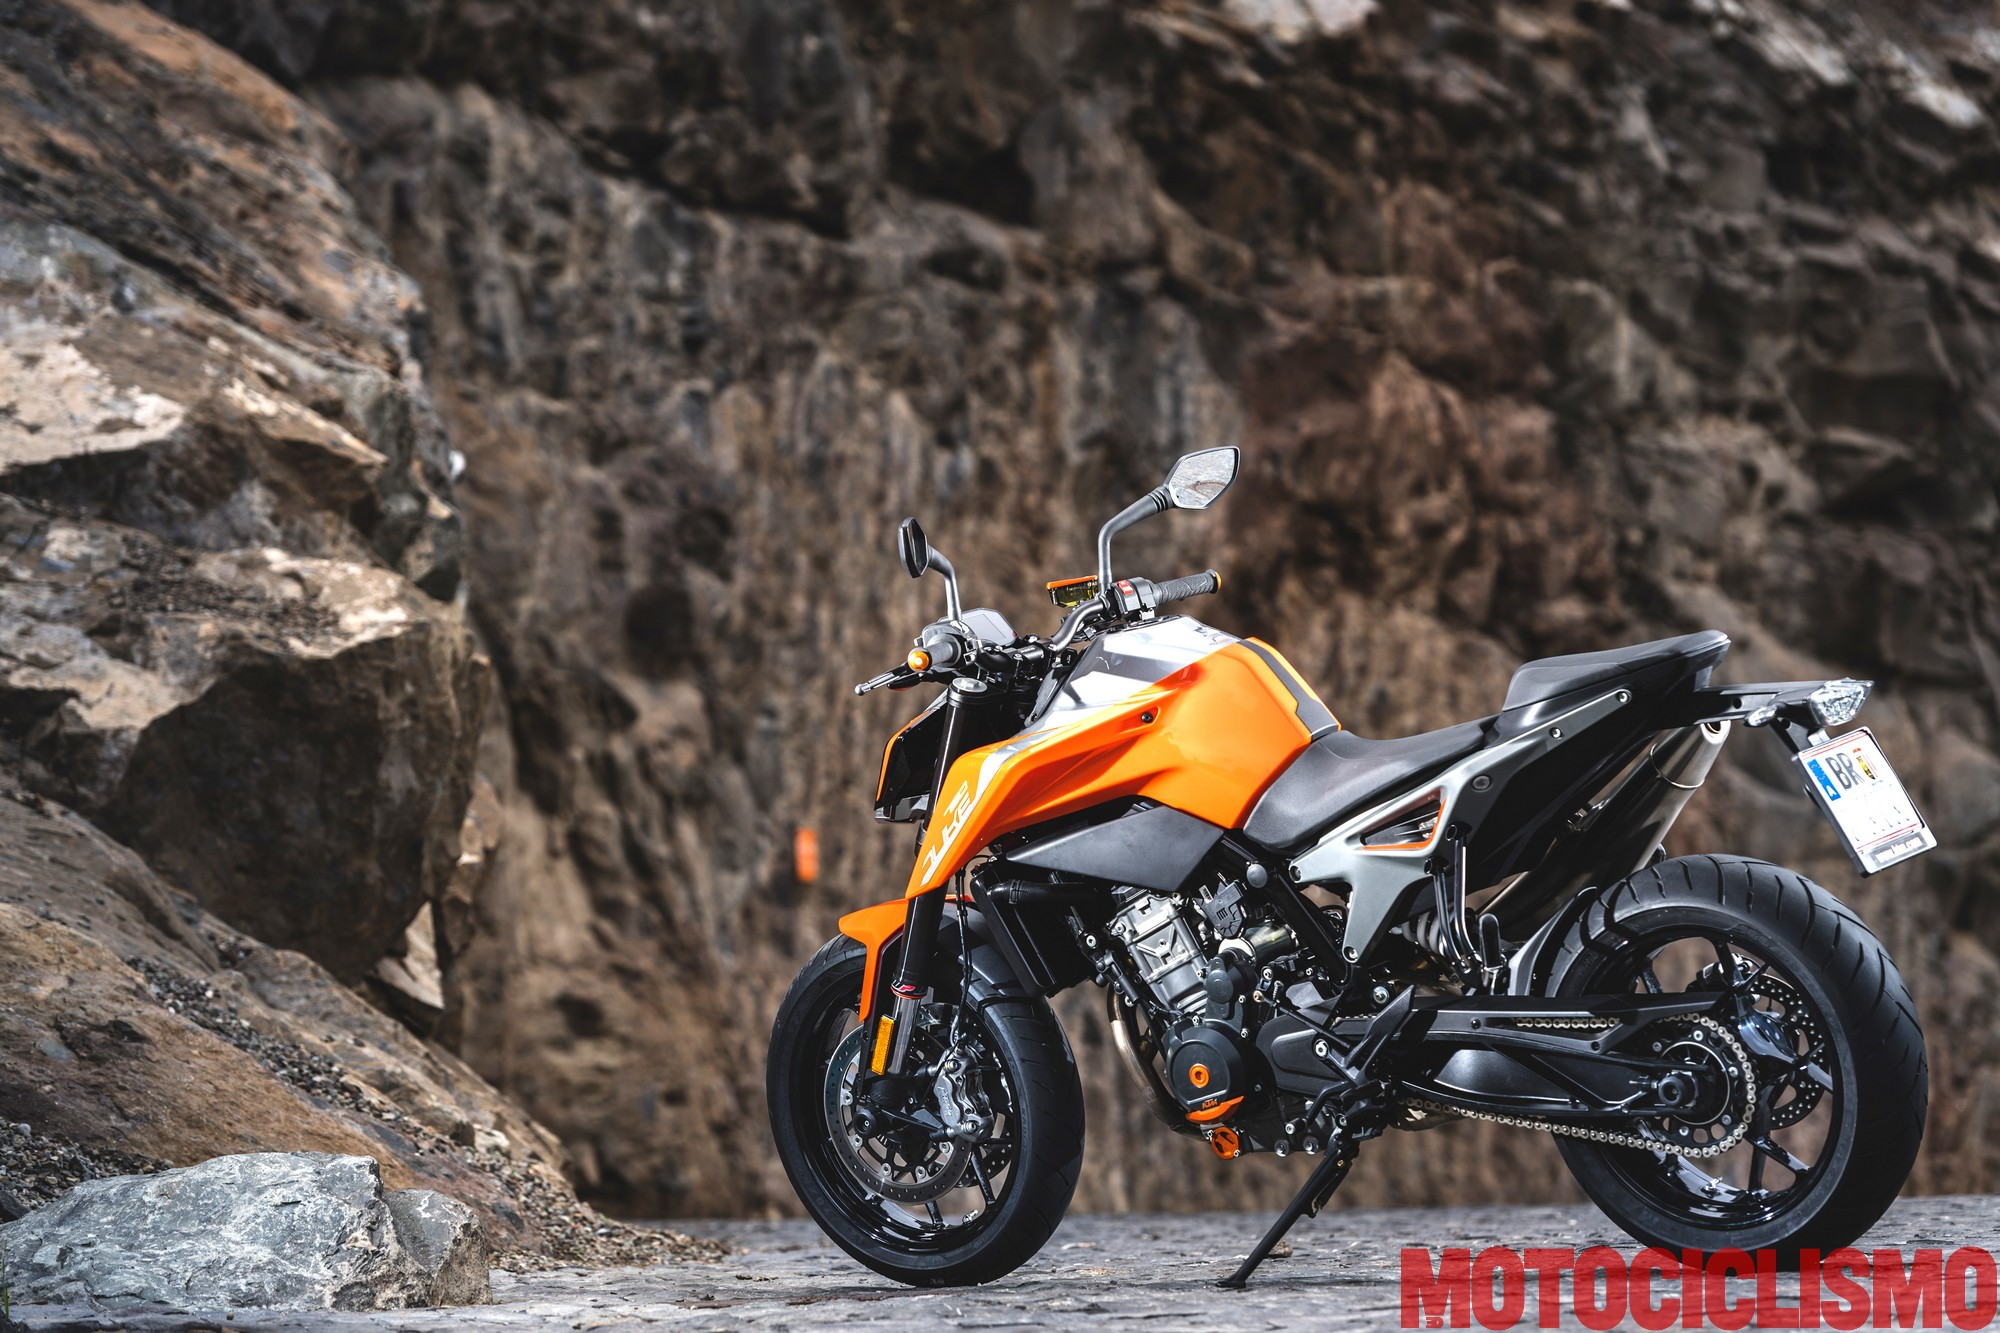 prova ktm 790 duke 2018 test come va pregi difetti e. Black Bedroom Furniture Sets. Home Design Ideas